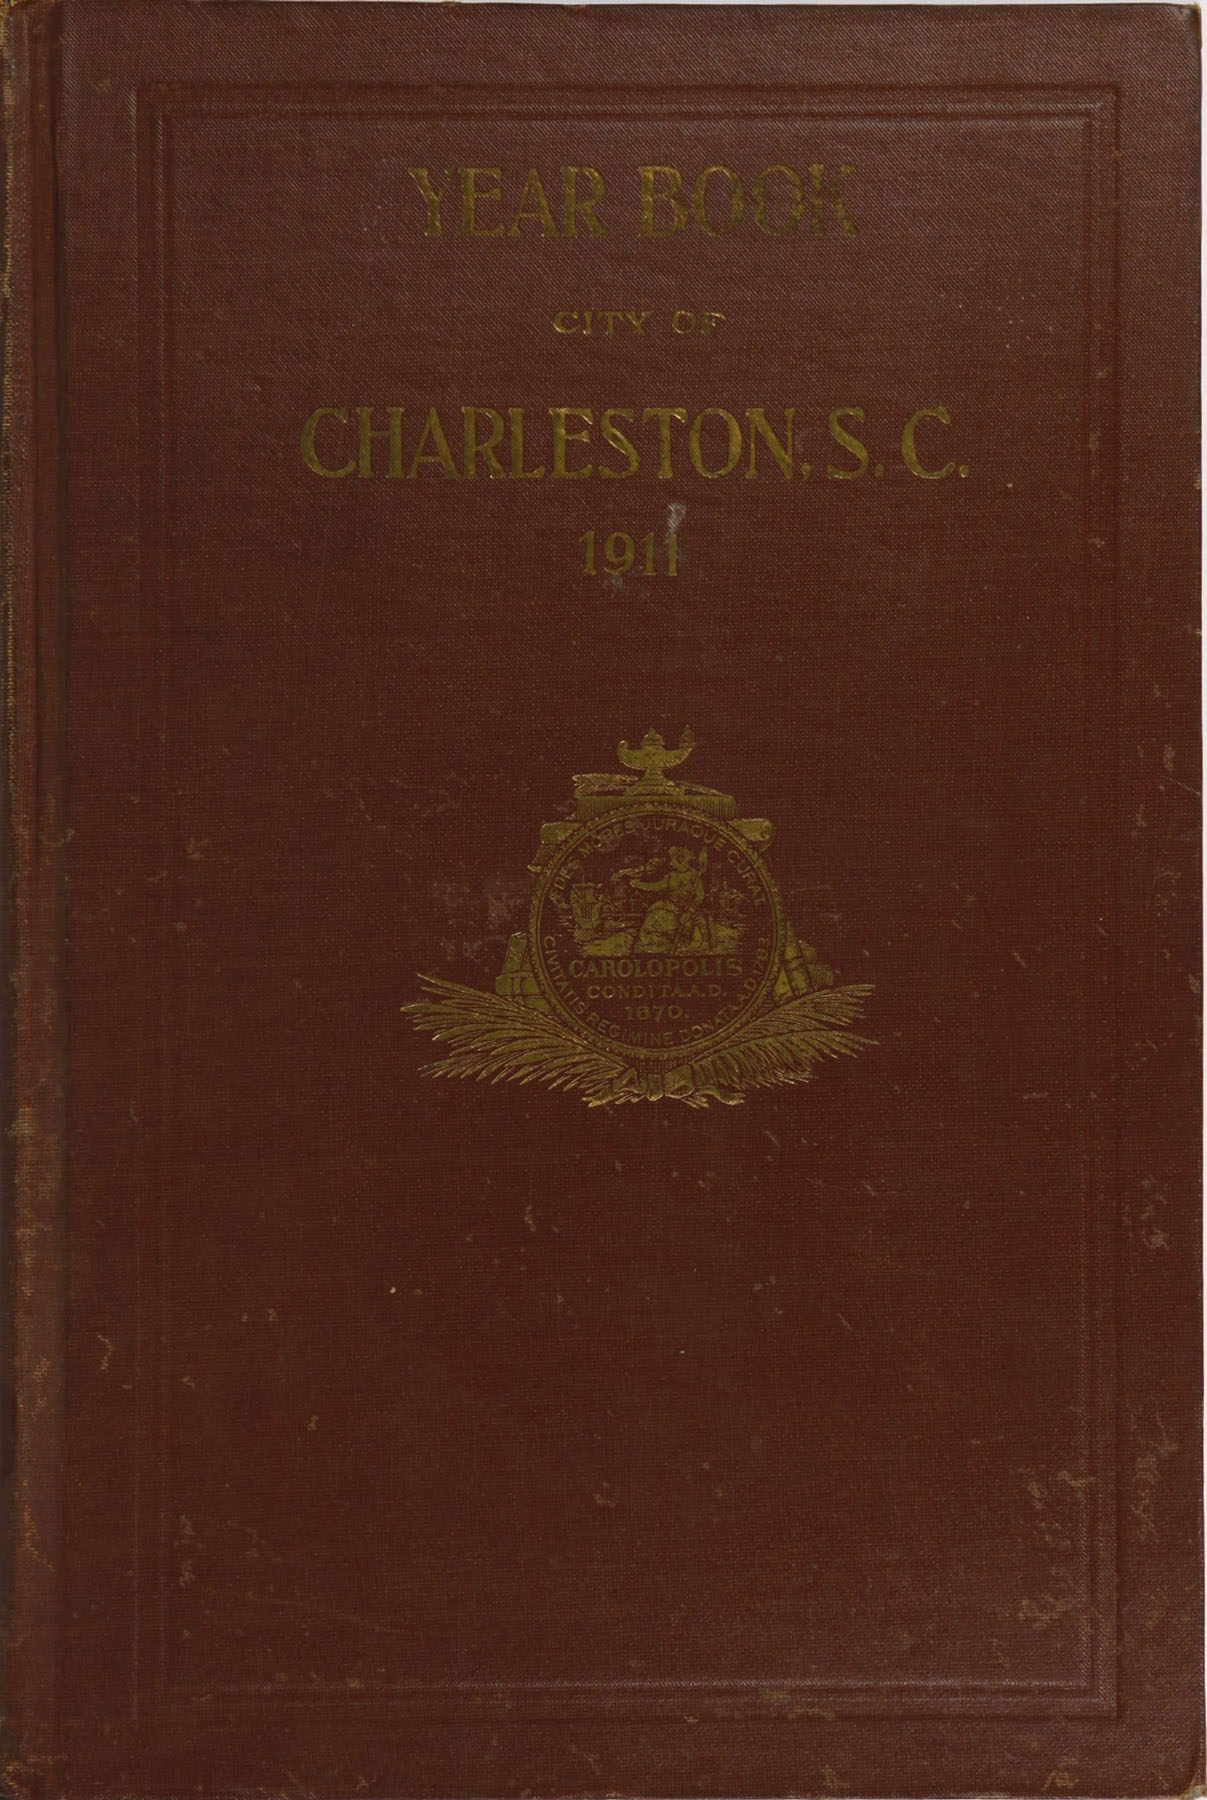 Charleston Yearbook, 1911, cover